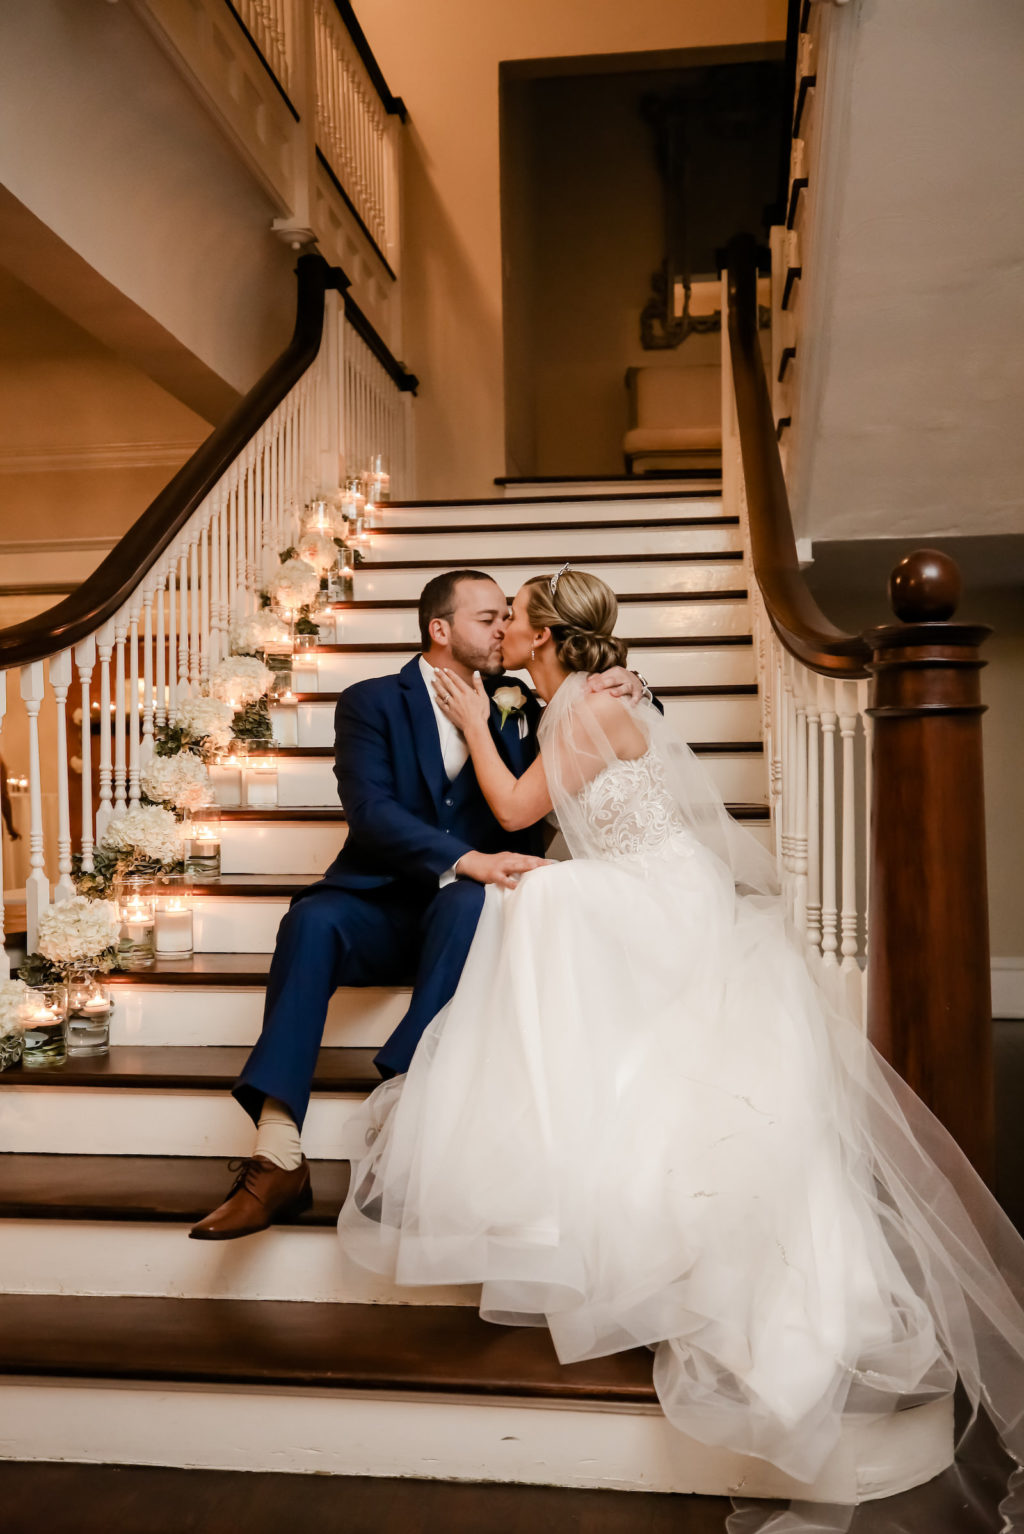 Classic Bride and Groom on Stairs of Wedding Venue The Orlo House with Floating Candles | Tampa Bay Wedding Photographer Lifelong Photography Studio